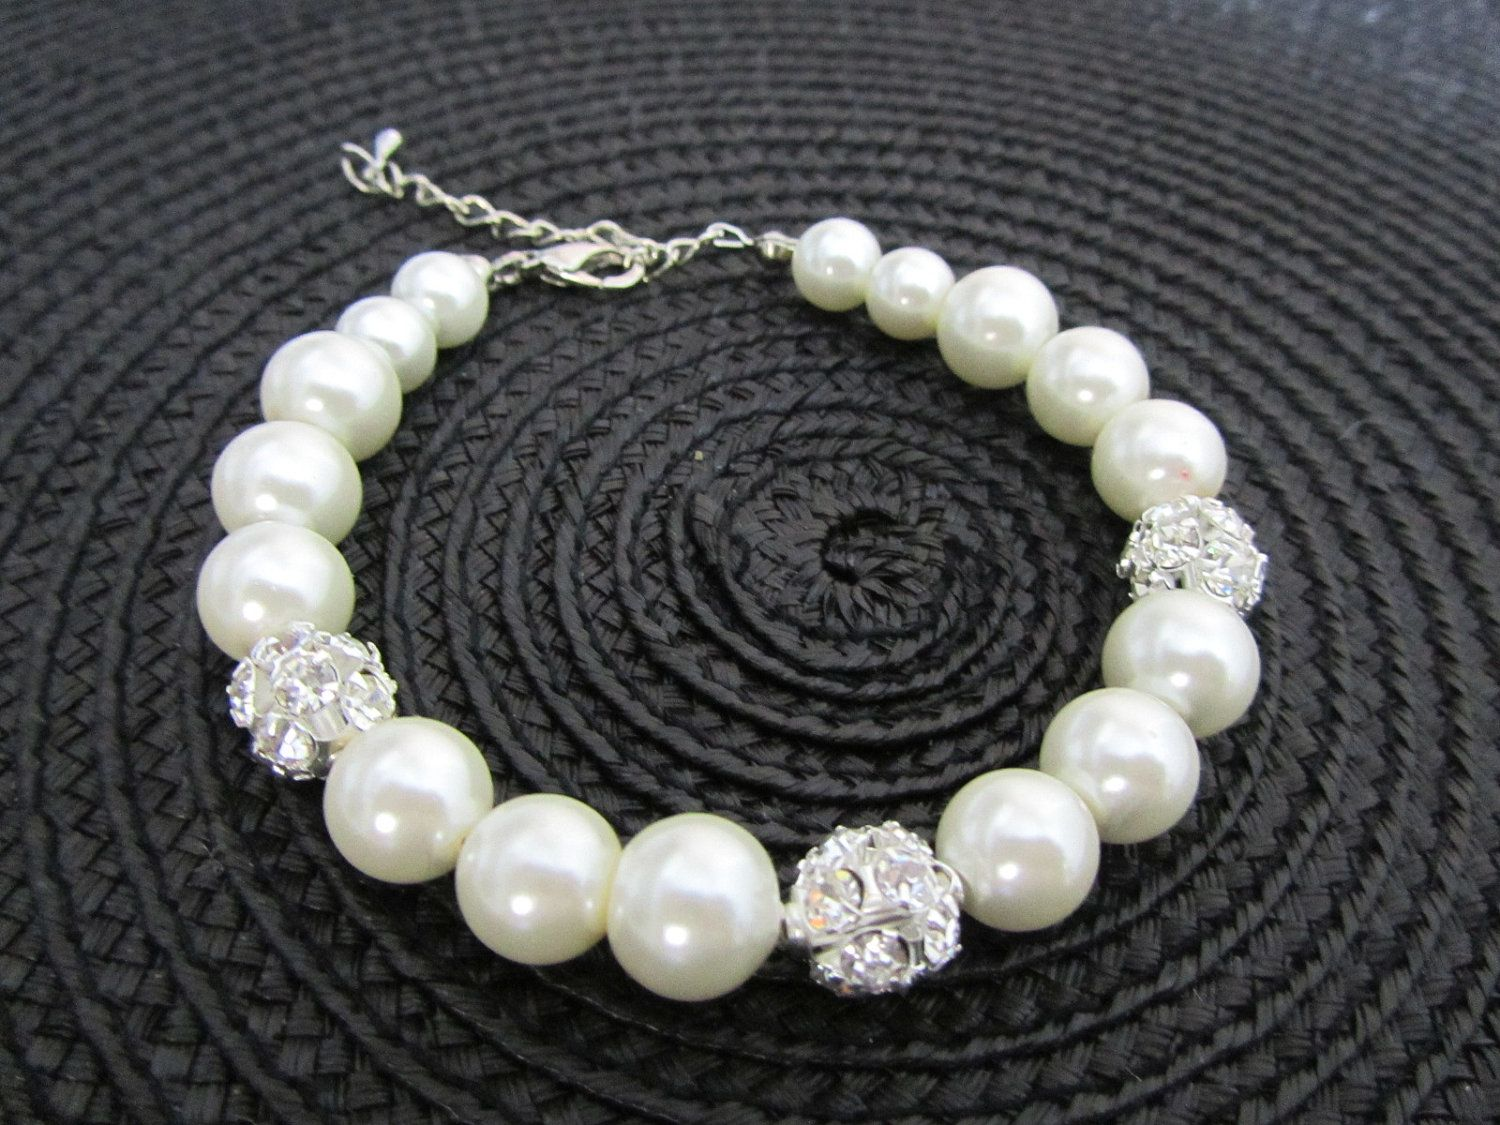 Rhinestone and pearl bracelet